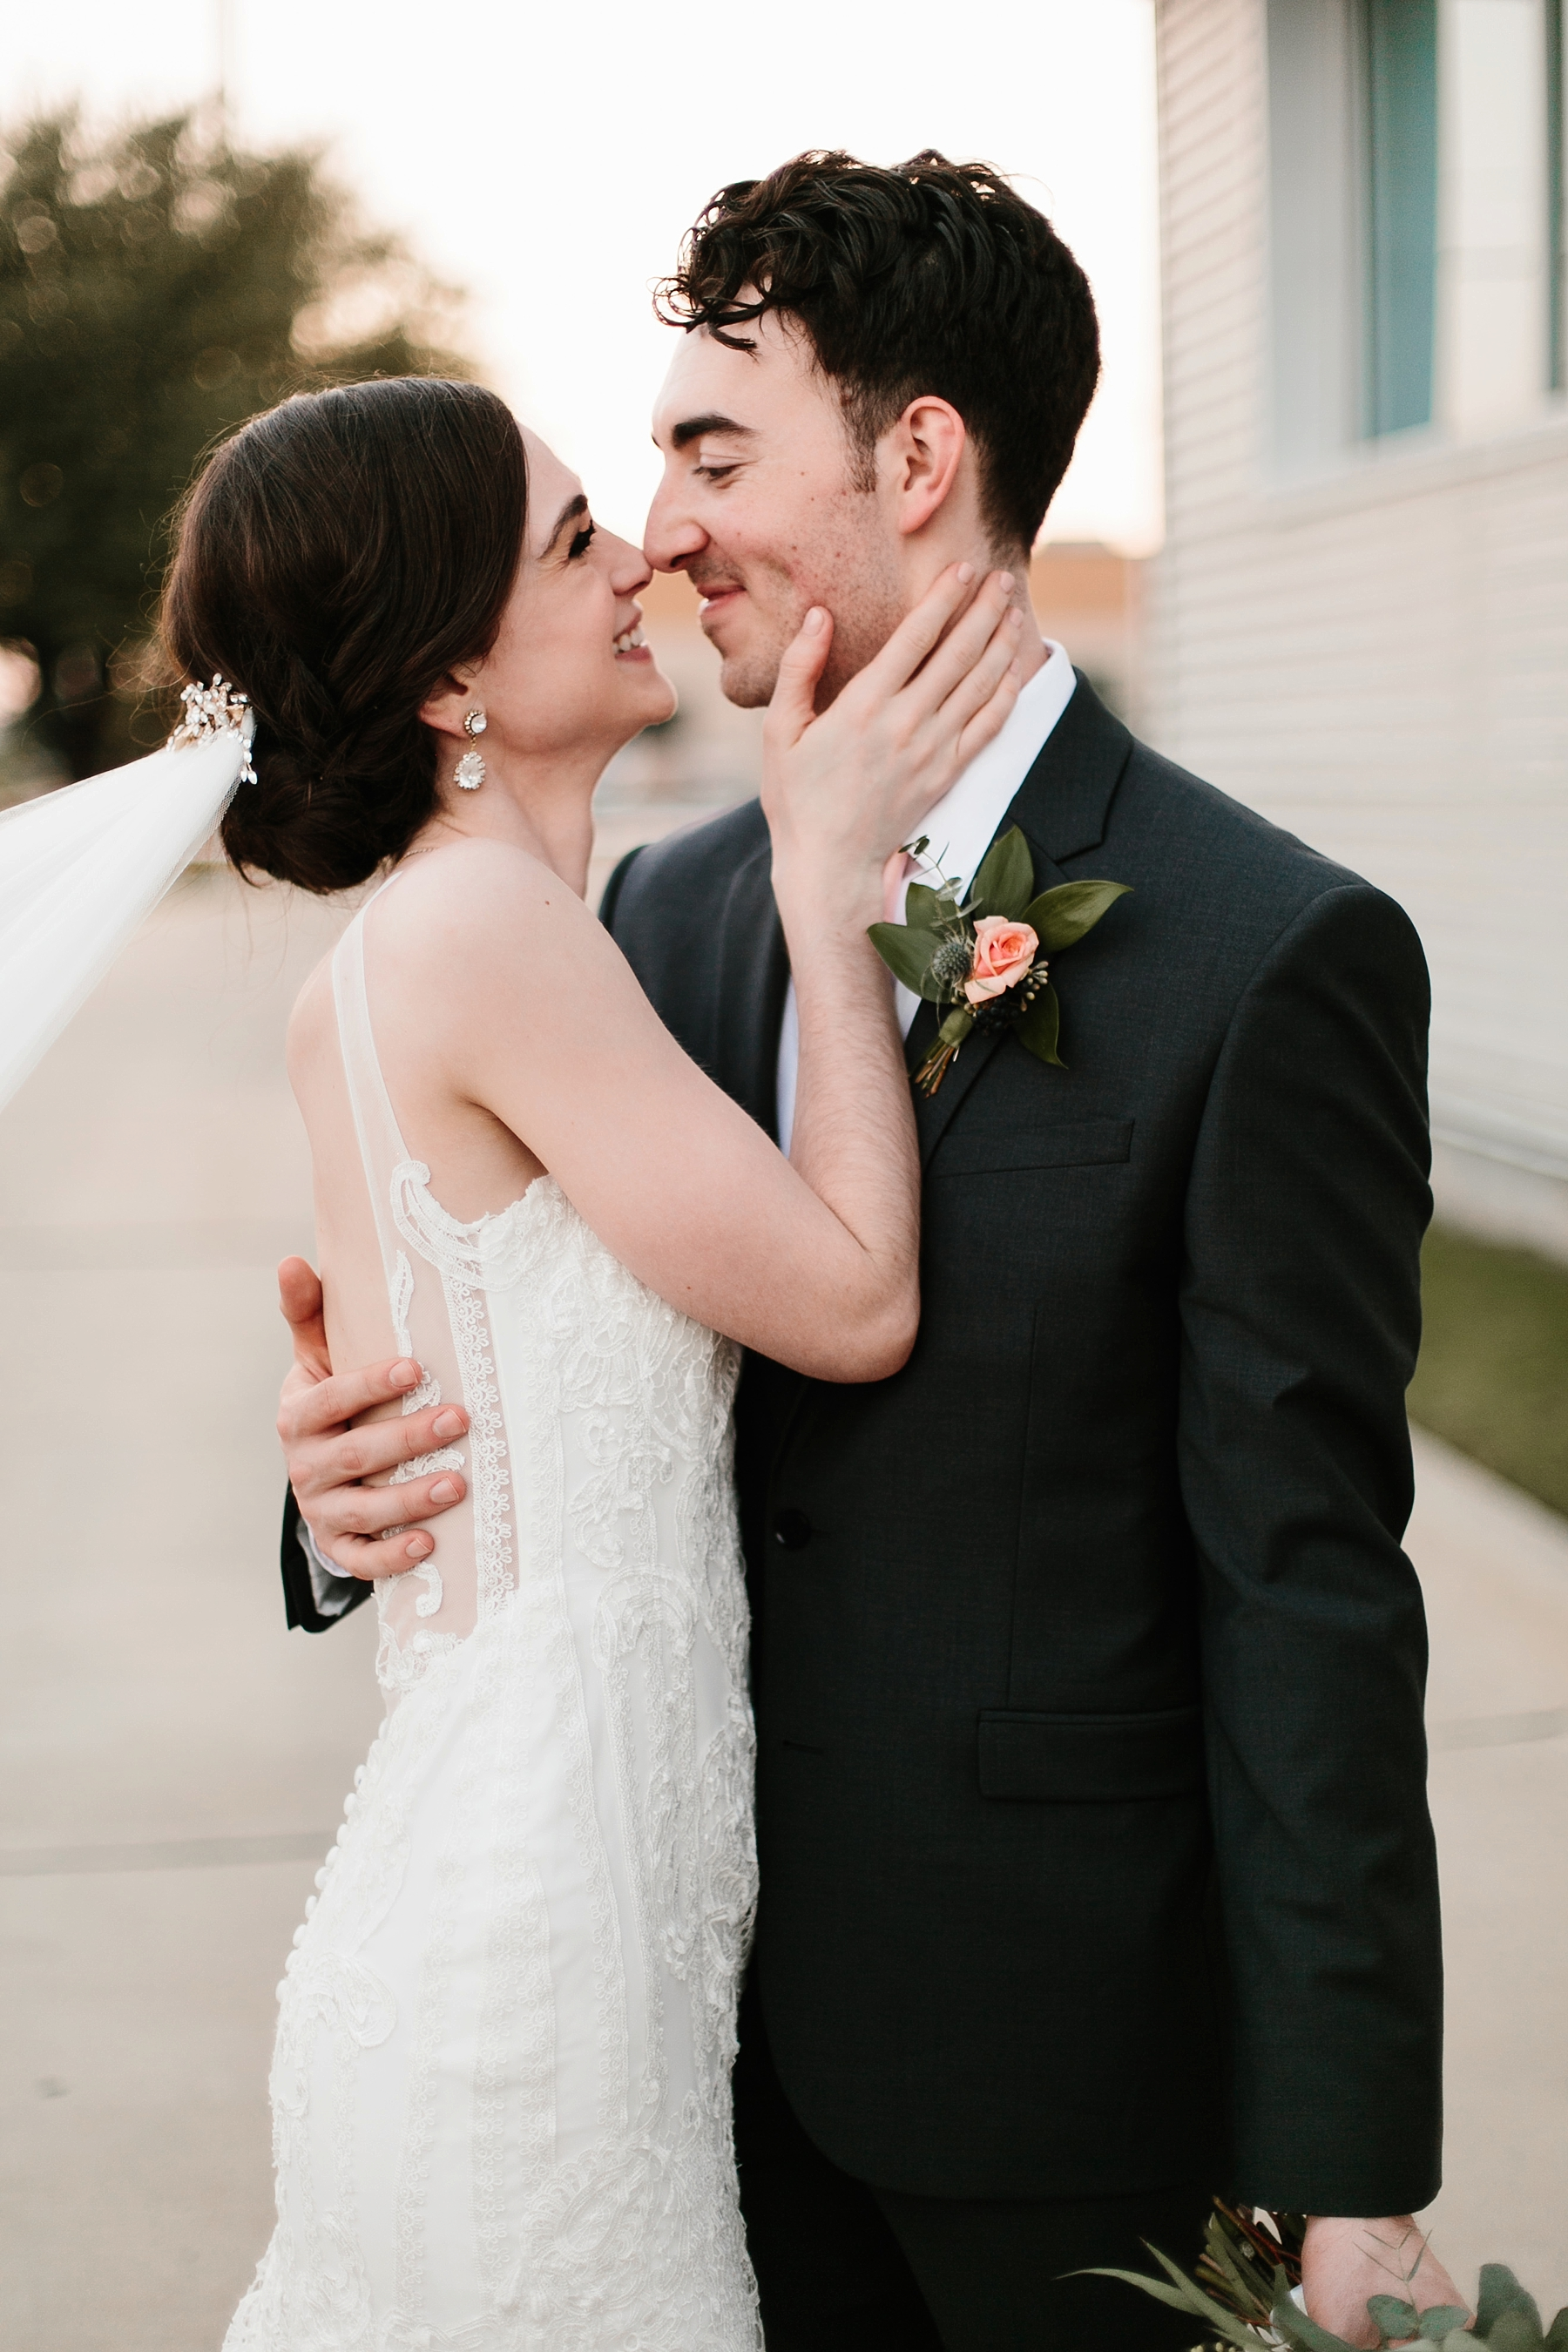 Emily + Caleb _ an elegant, intentional, industrial style wedding with navy + gold accents at 6500 in Dallas, TX by North Texas Wedding Photographer Rachel Meagan Photography _ 122